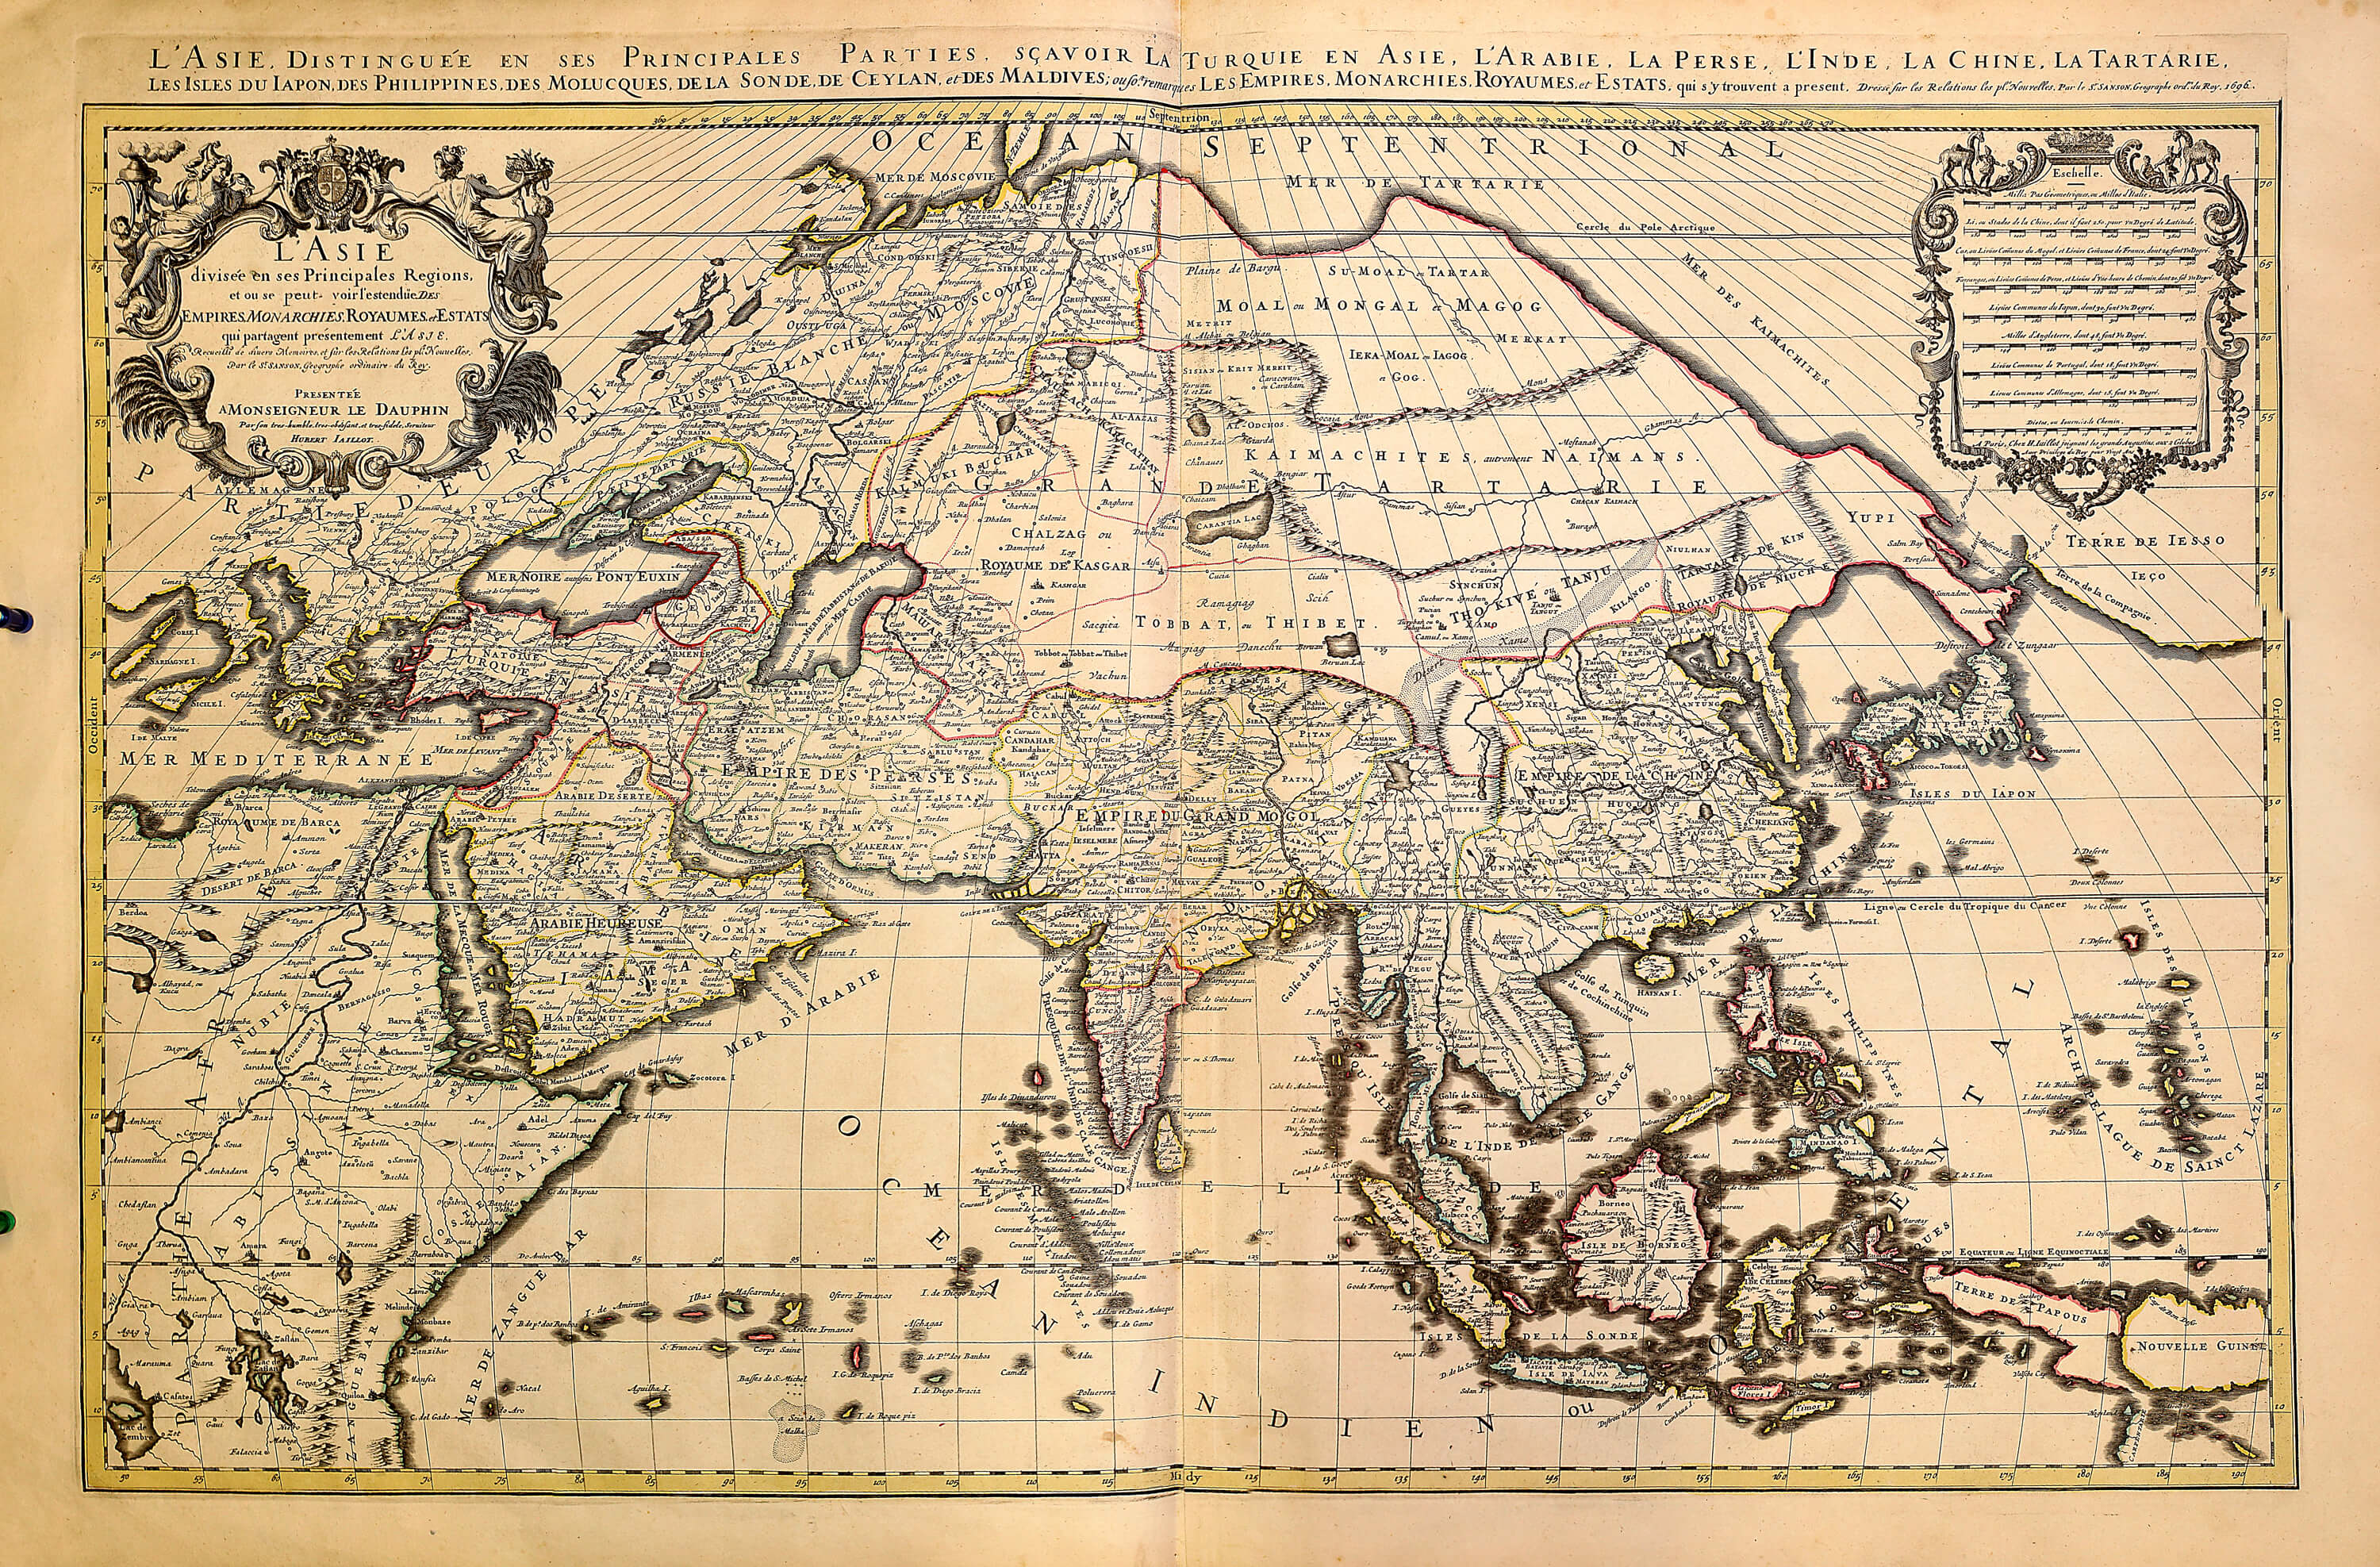 World atlas map of germany copy austria map world atlas europe map austria map world atlas a 1 72 07 asia gumiabroncs Image collections